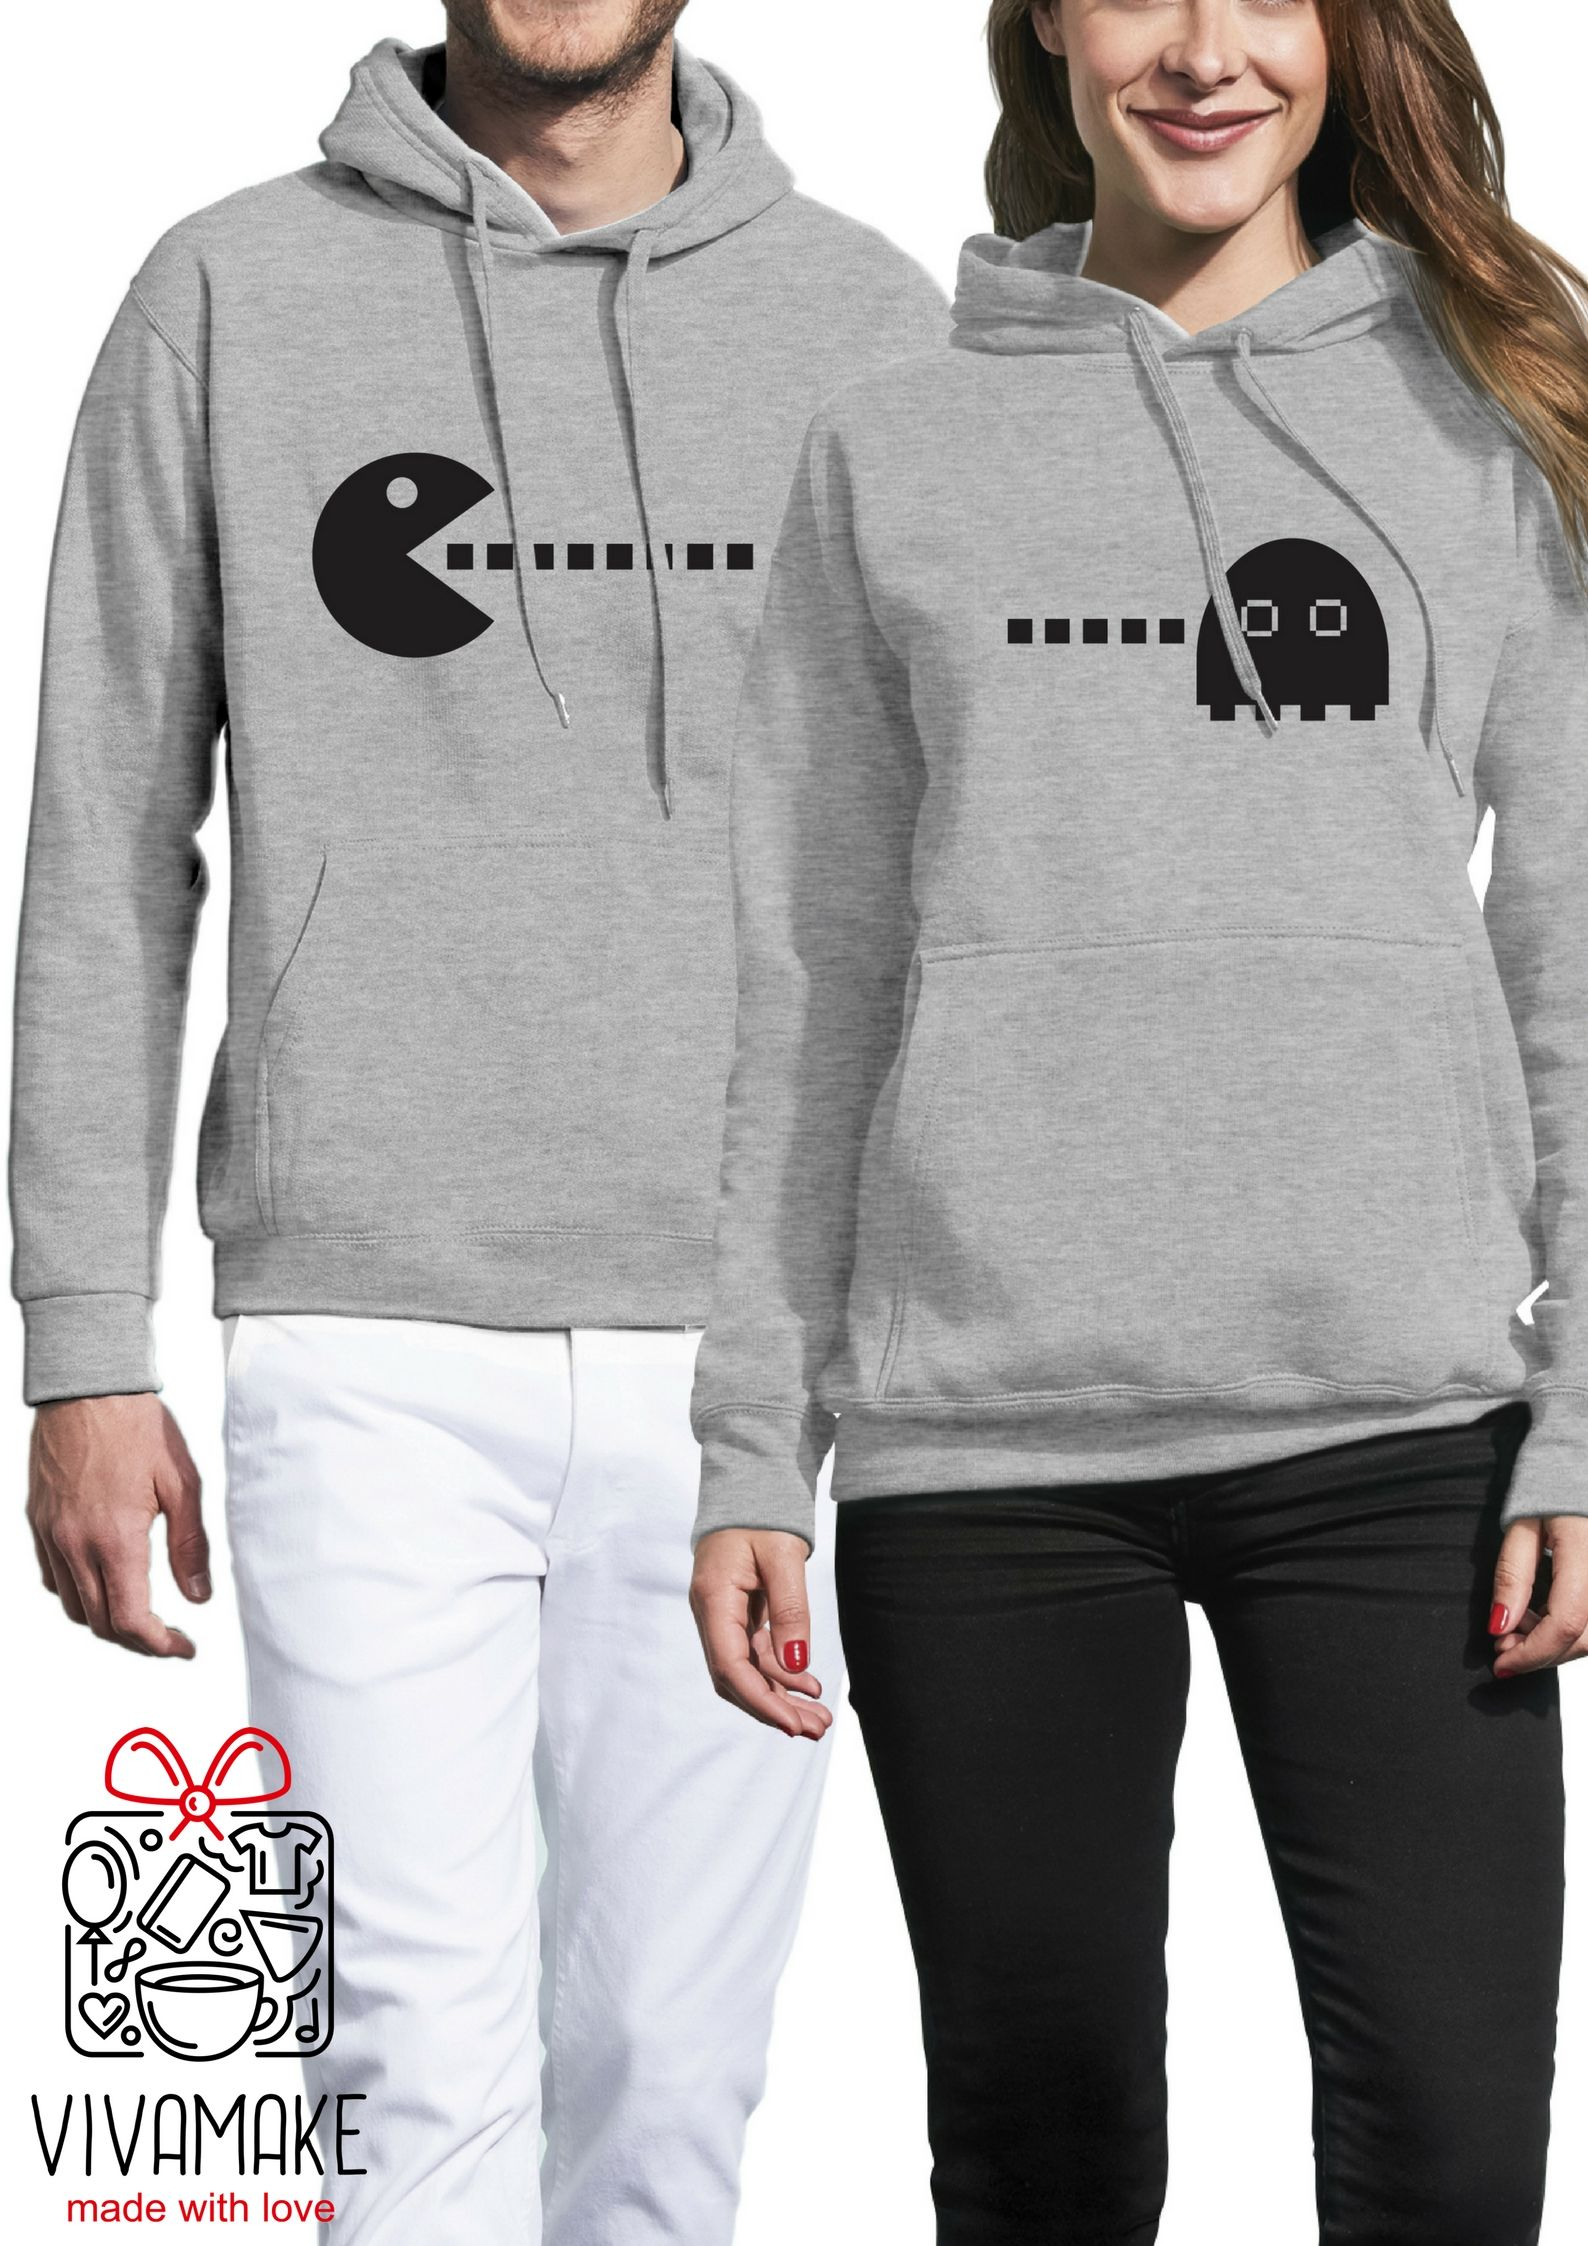 68719d9d pärchen hoodies / couple sweatshirts/ his and hers hoodies / bear couple  hooded sweatshirts / couples matching set / mr and mrs